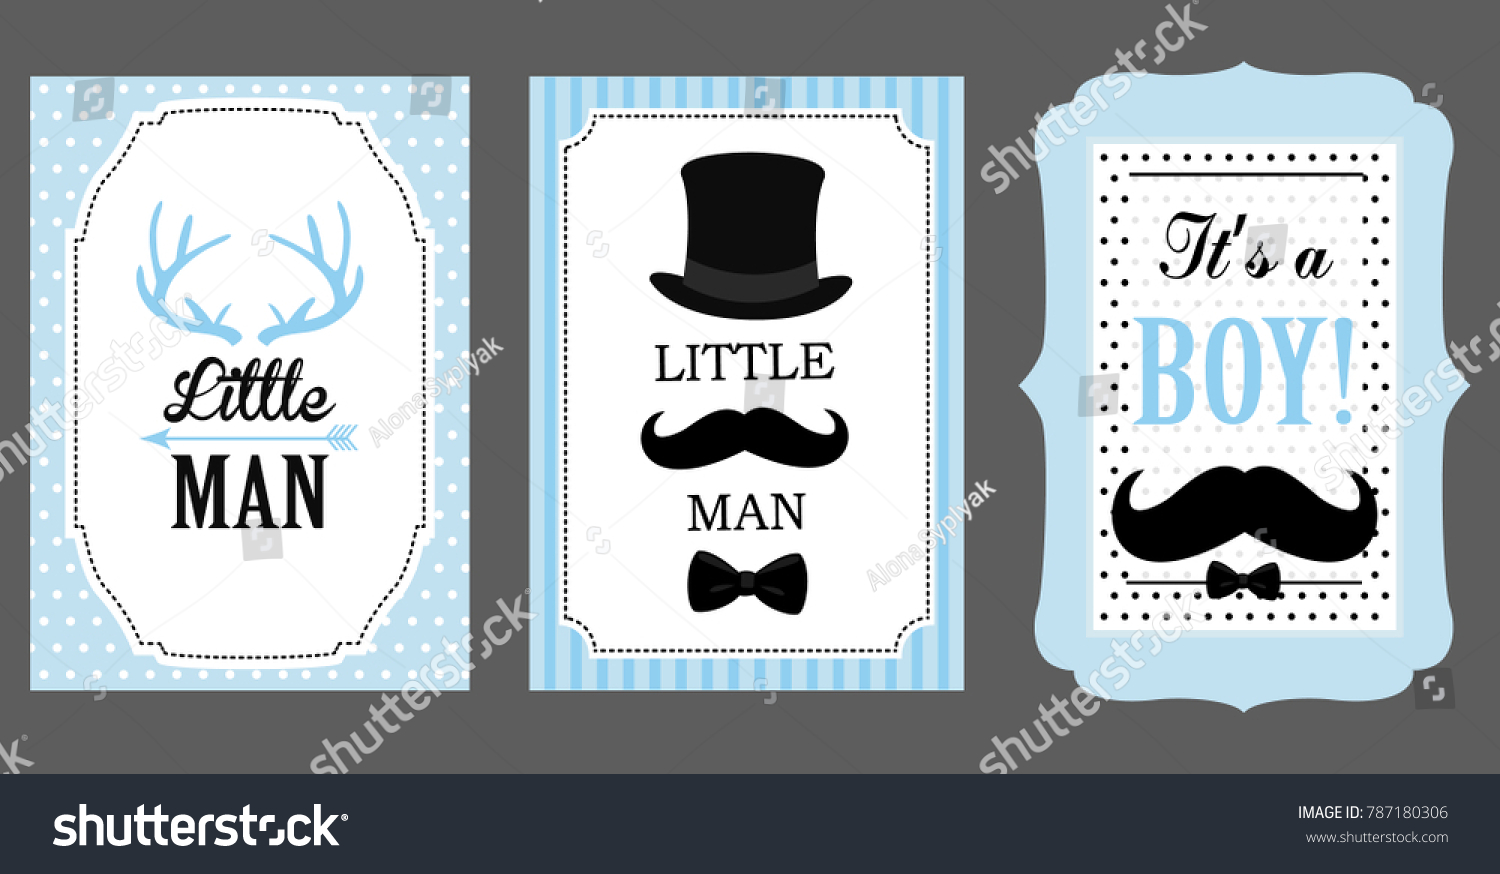 Little Man Birthday Party Baby Shower Stock Vector (Royalty Free ...